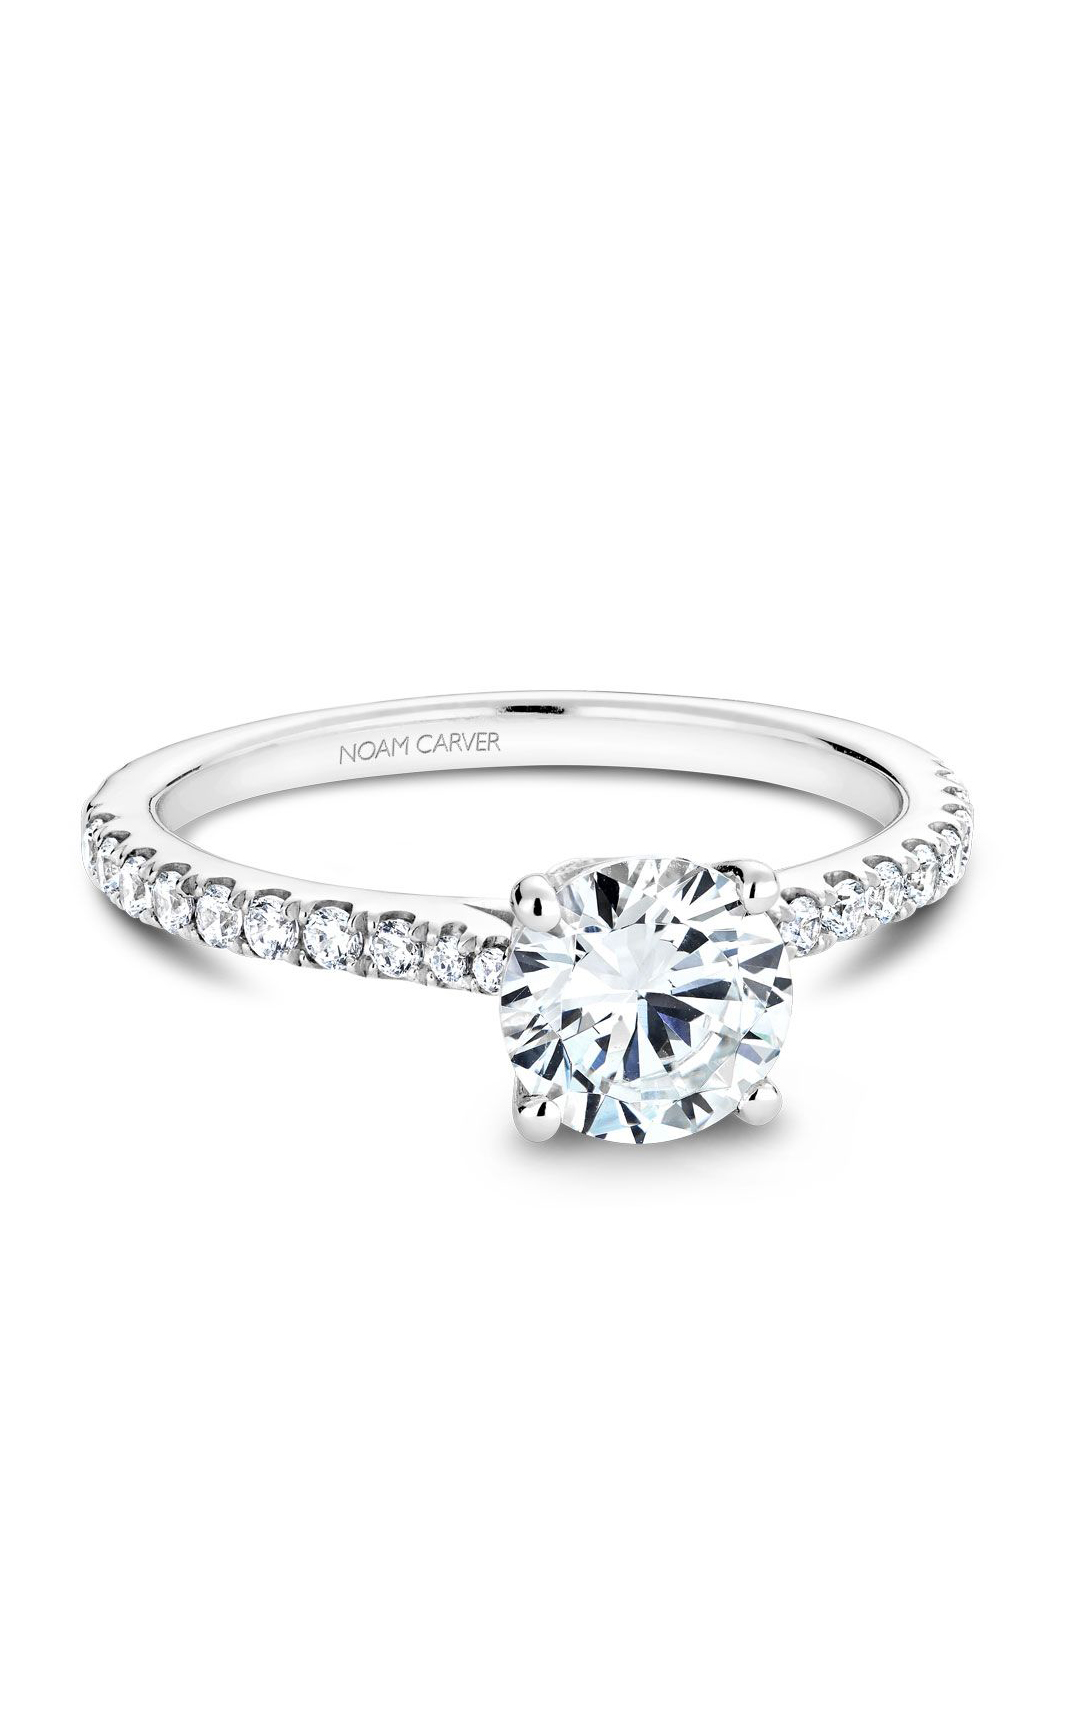 Noam Carver Solitaire Engagement Ring B142-01WM product image